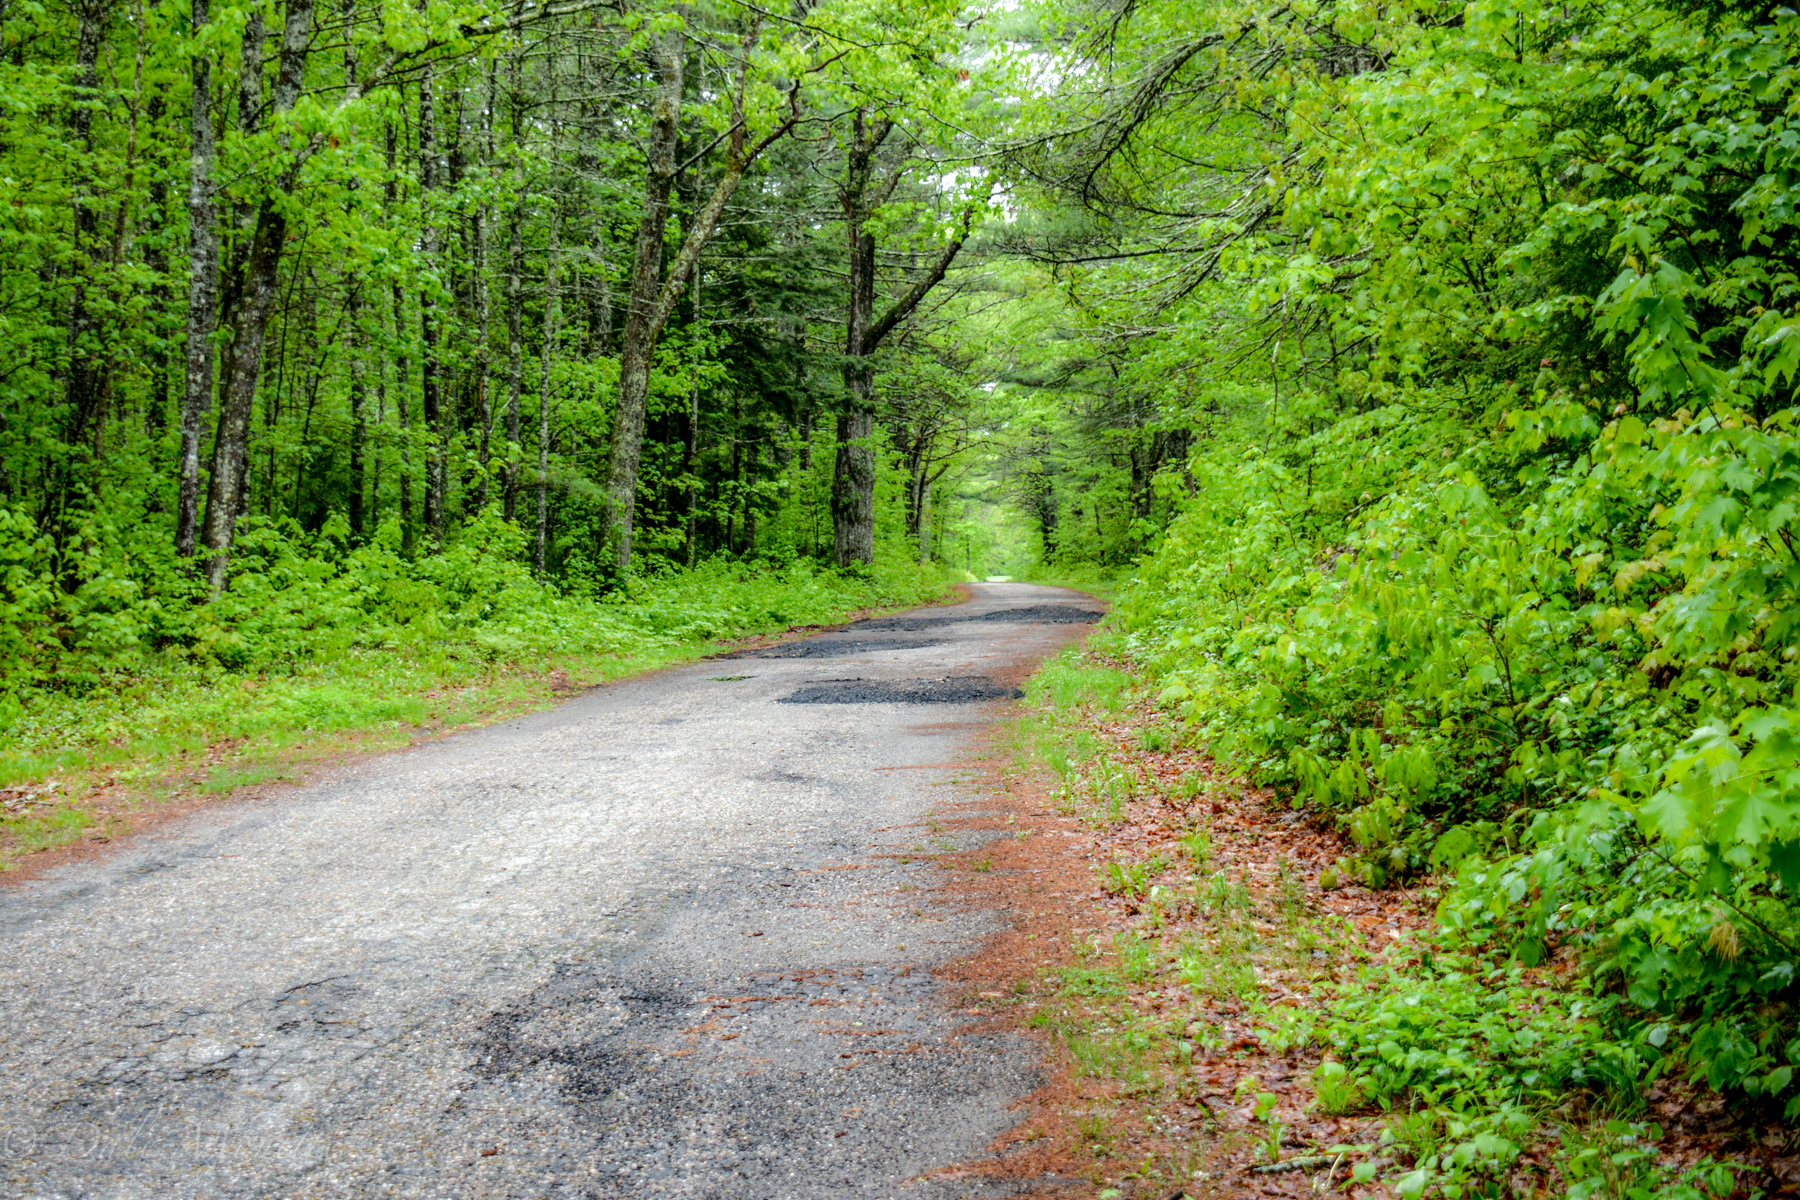 The road to Dana Common through Gate 40 in Petersham off of RT 32A